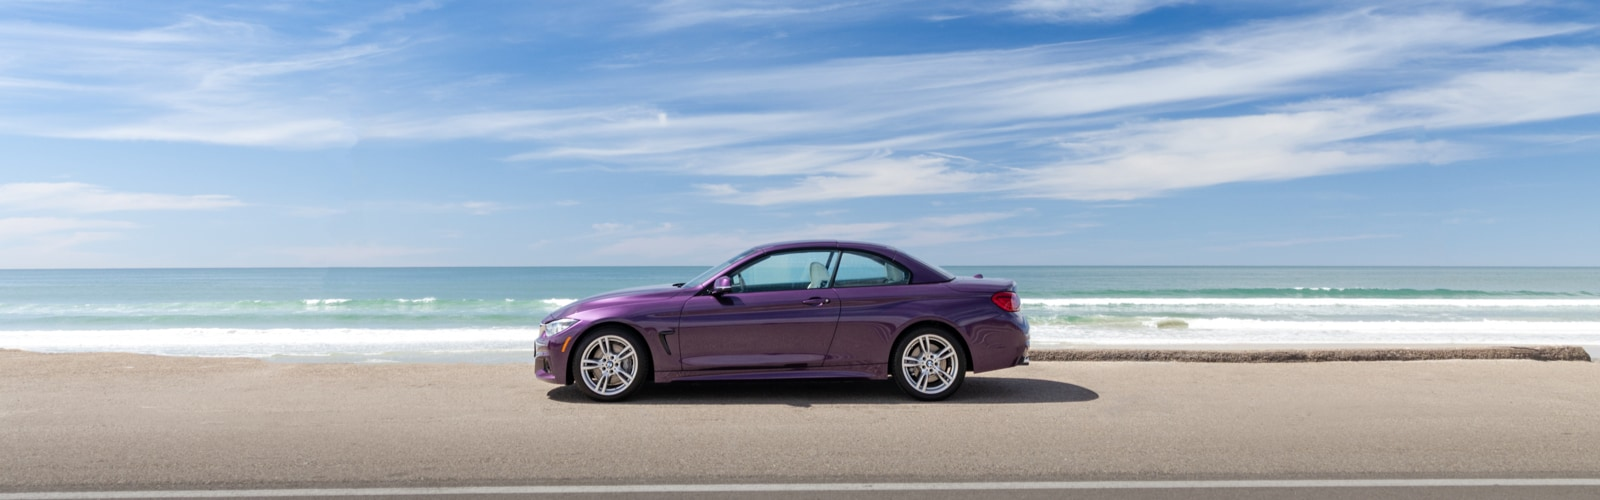 BMW 4 series lease deals Image